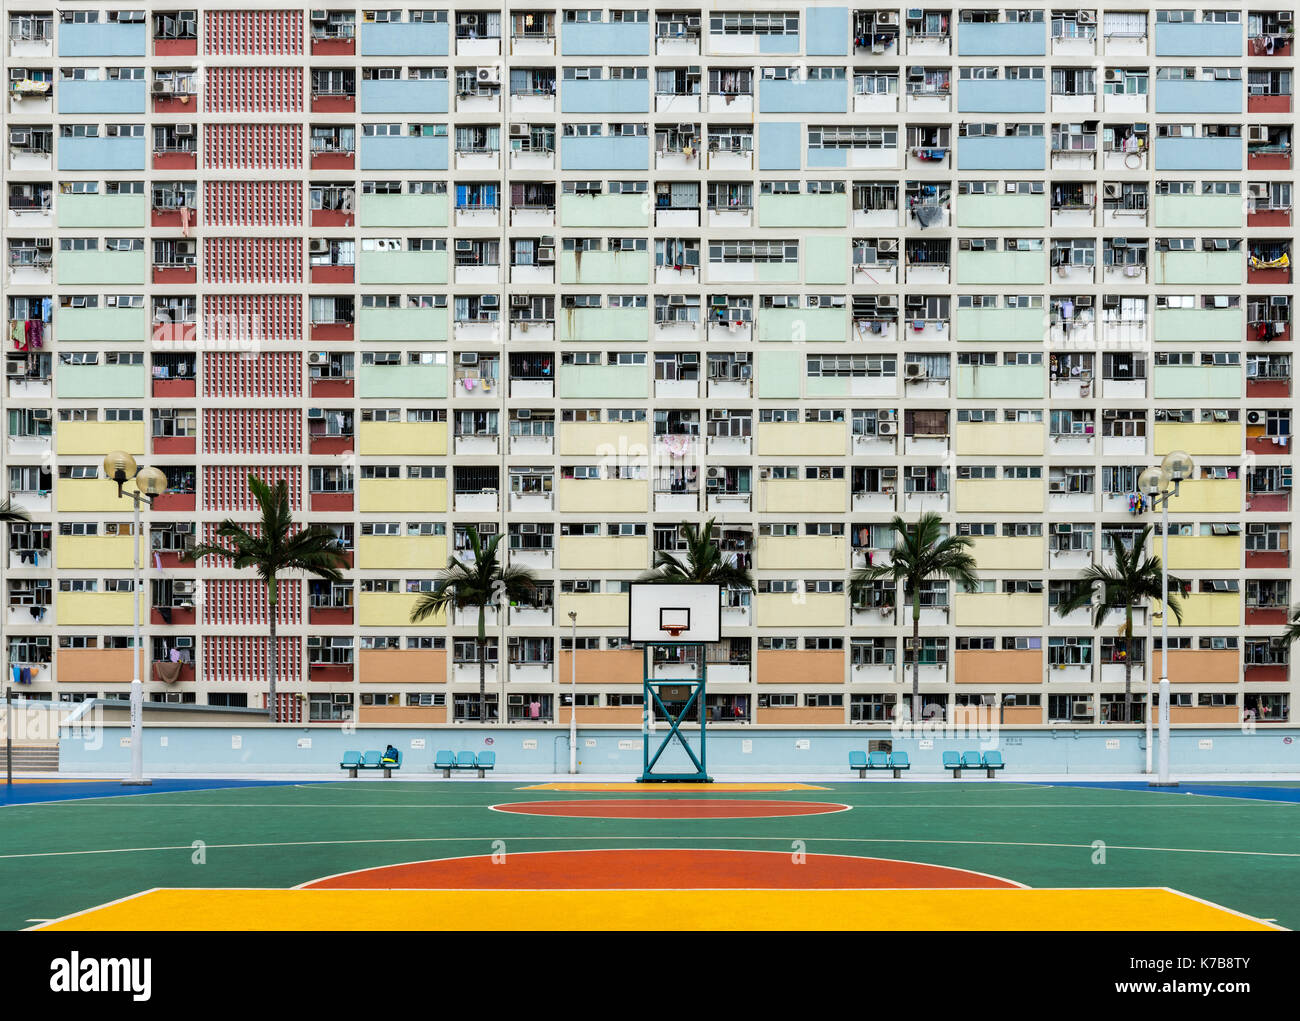 Choi Hung Estate, one of the oldest public housing estates in Hong Kong. It is located in the Wong Tai Sin District of Kowloon. Hong Kong. View from S - Stock Image